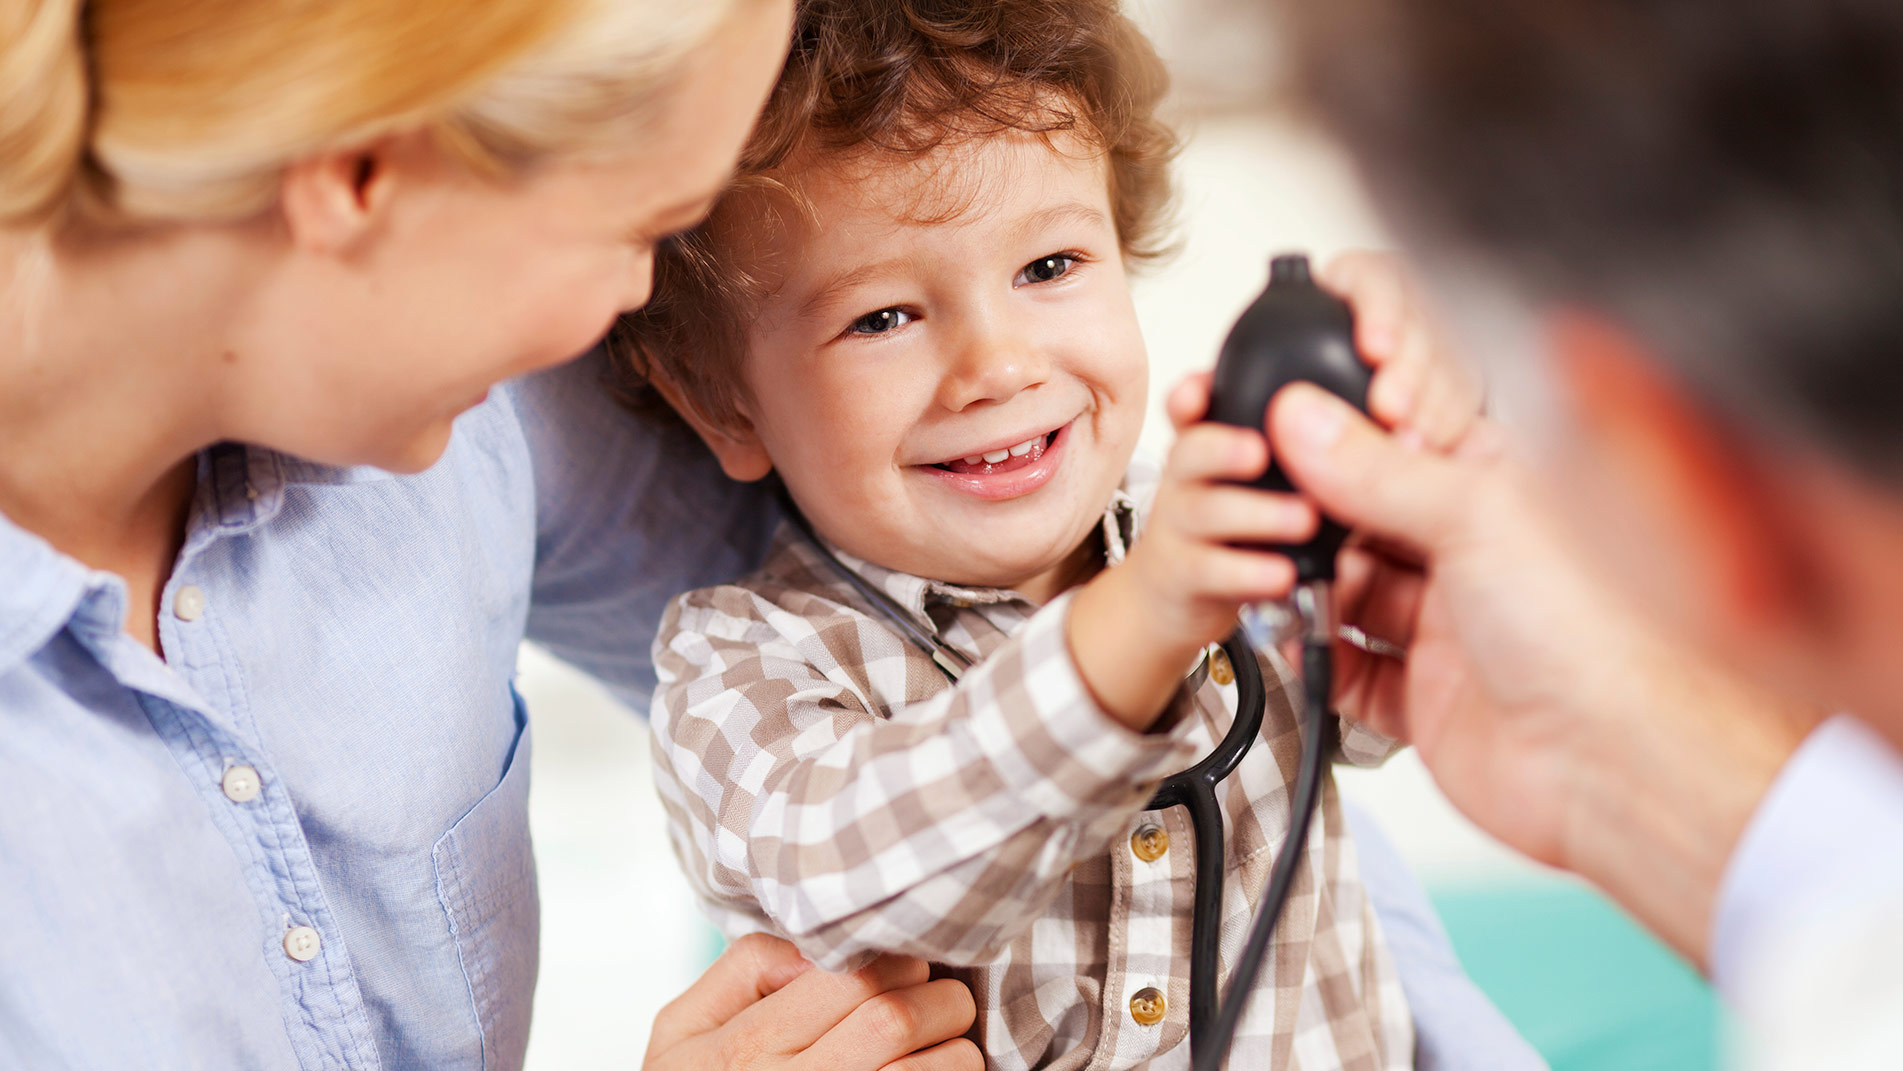 childrens-home-healthcare-what-to-expect